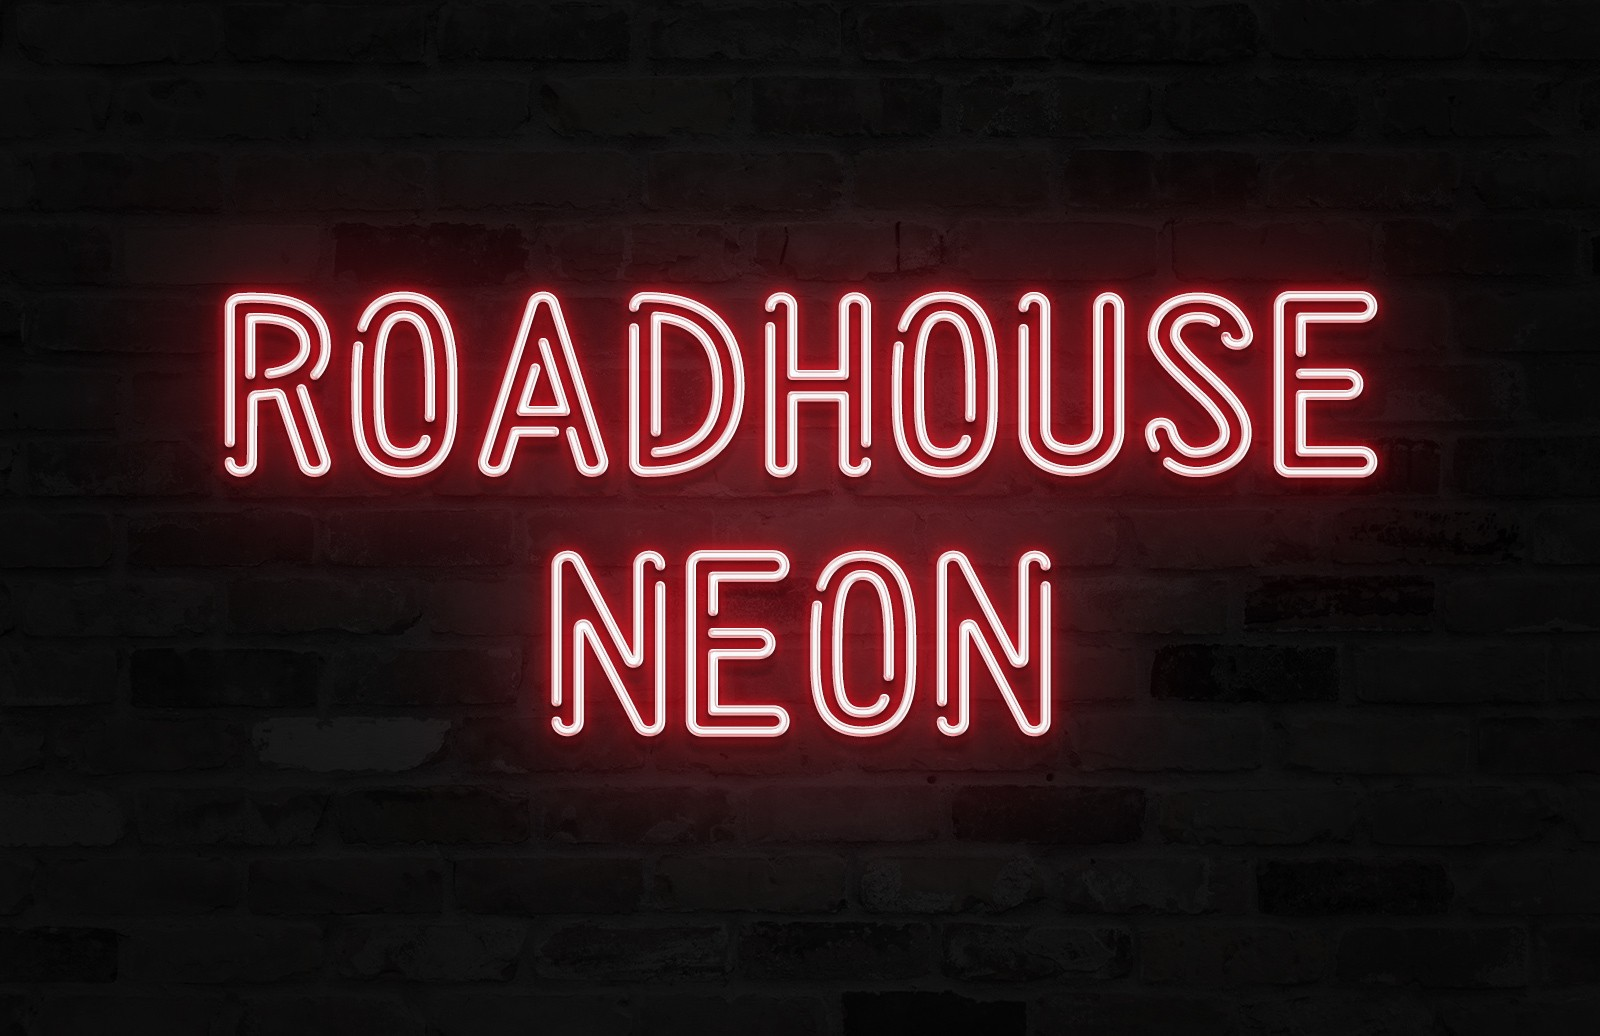 Roadhouse Neon Preview 1B